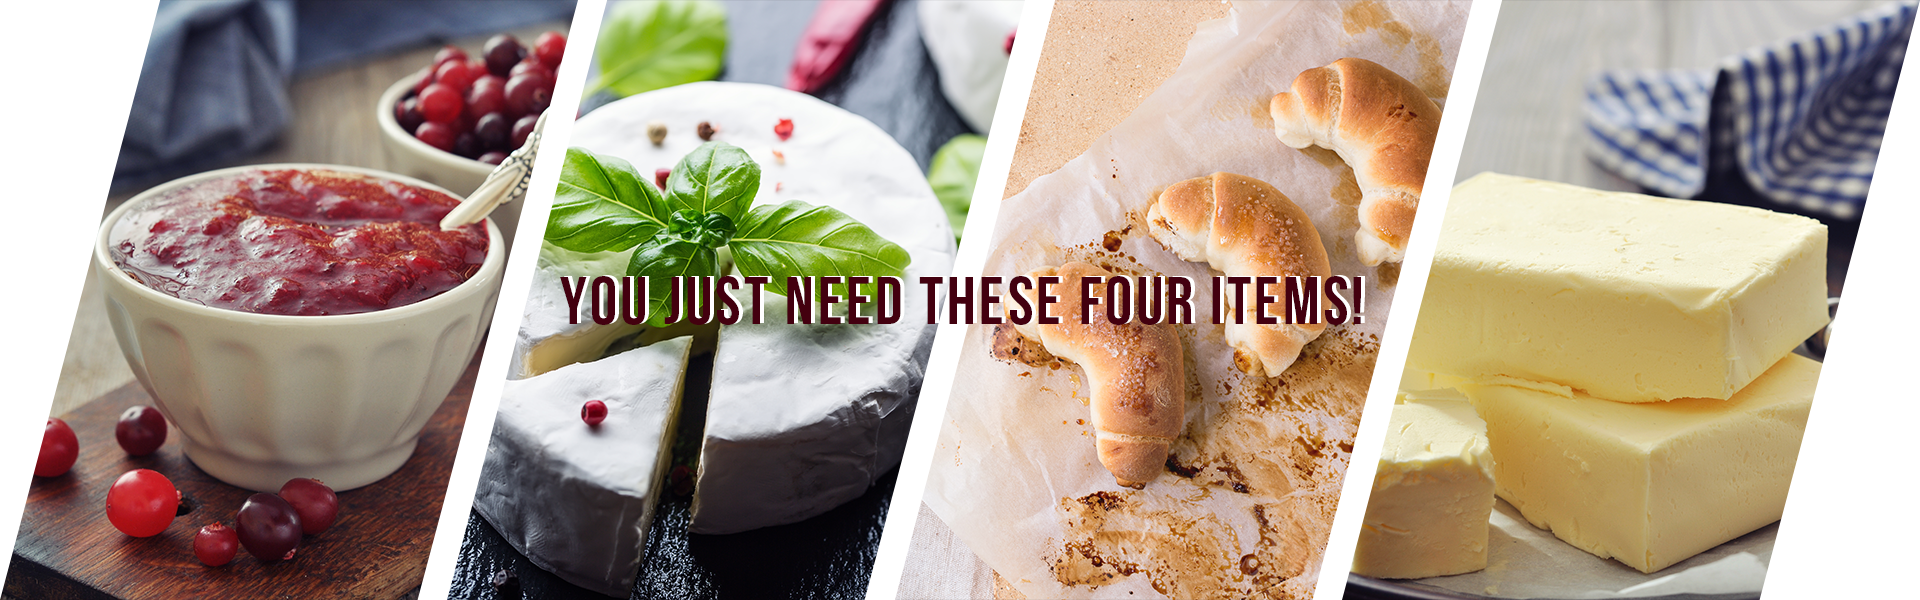 you-just-need-these-four-items-cranberry-sauce-brie-crescent-rolls-butter